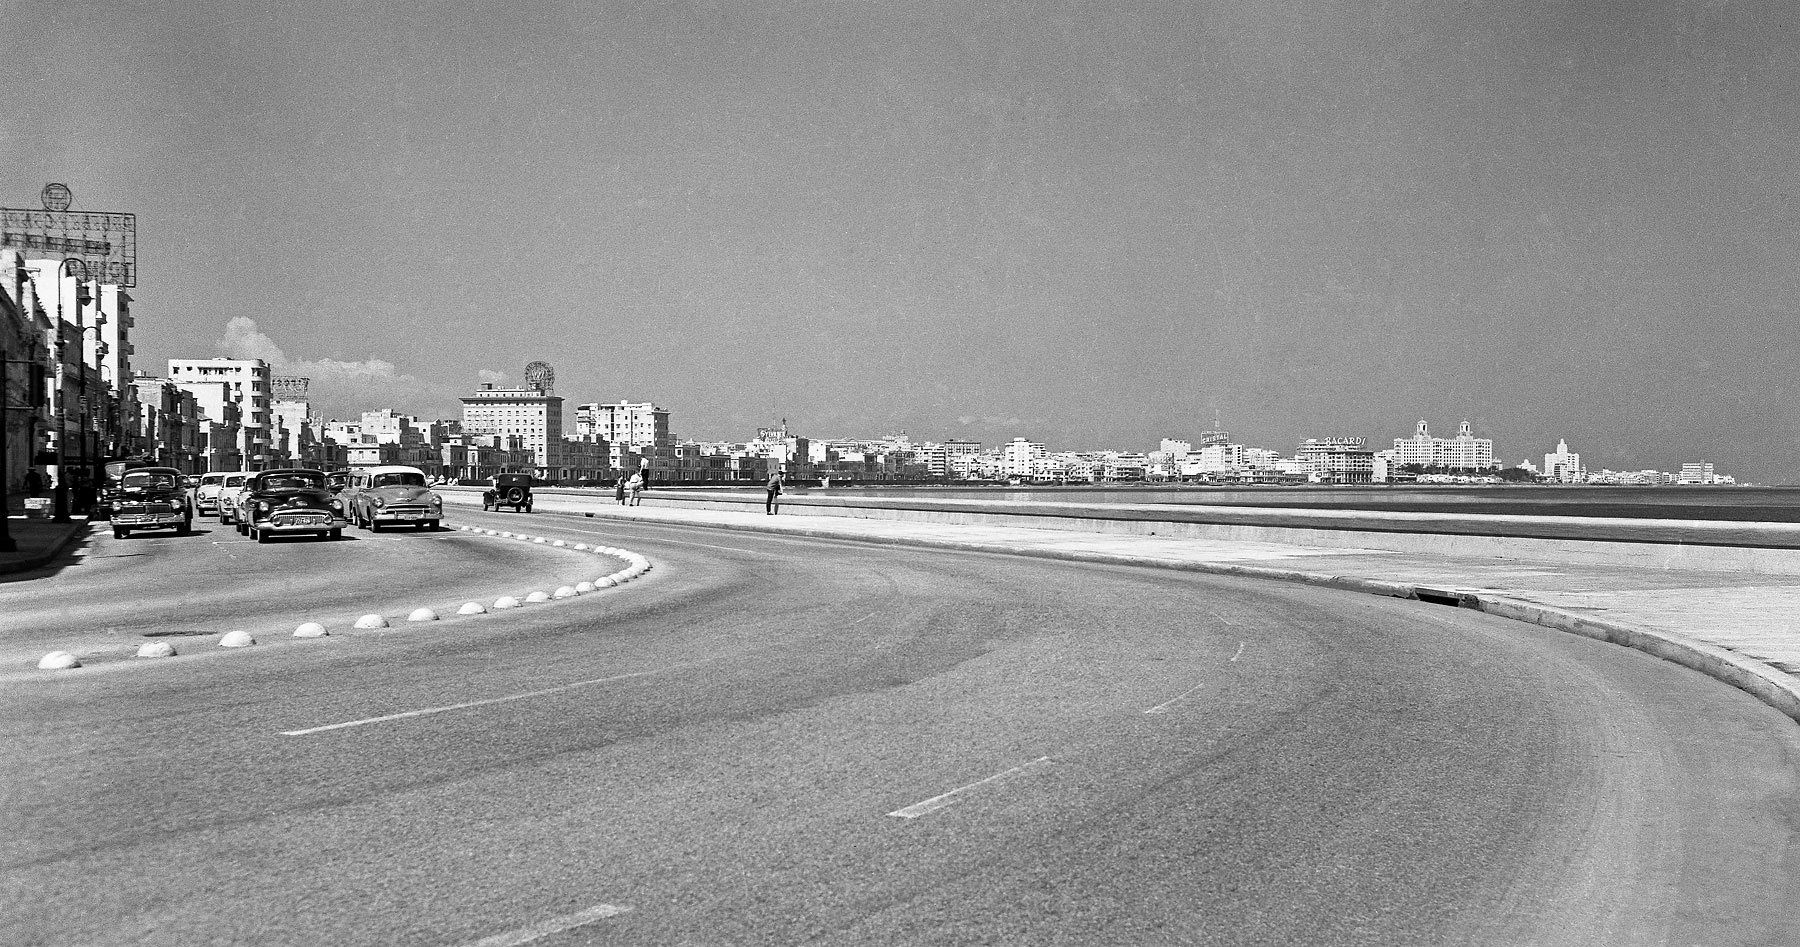 Citywide view from El Malecon 1953